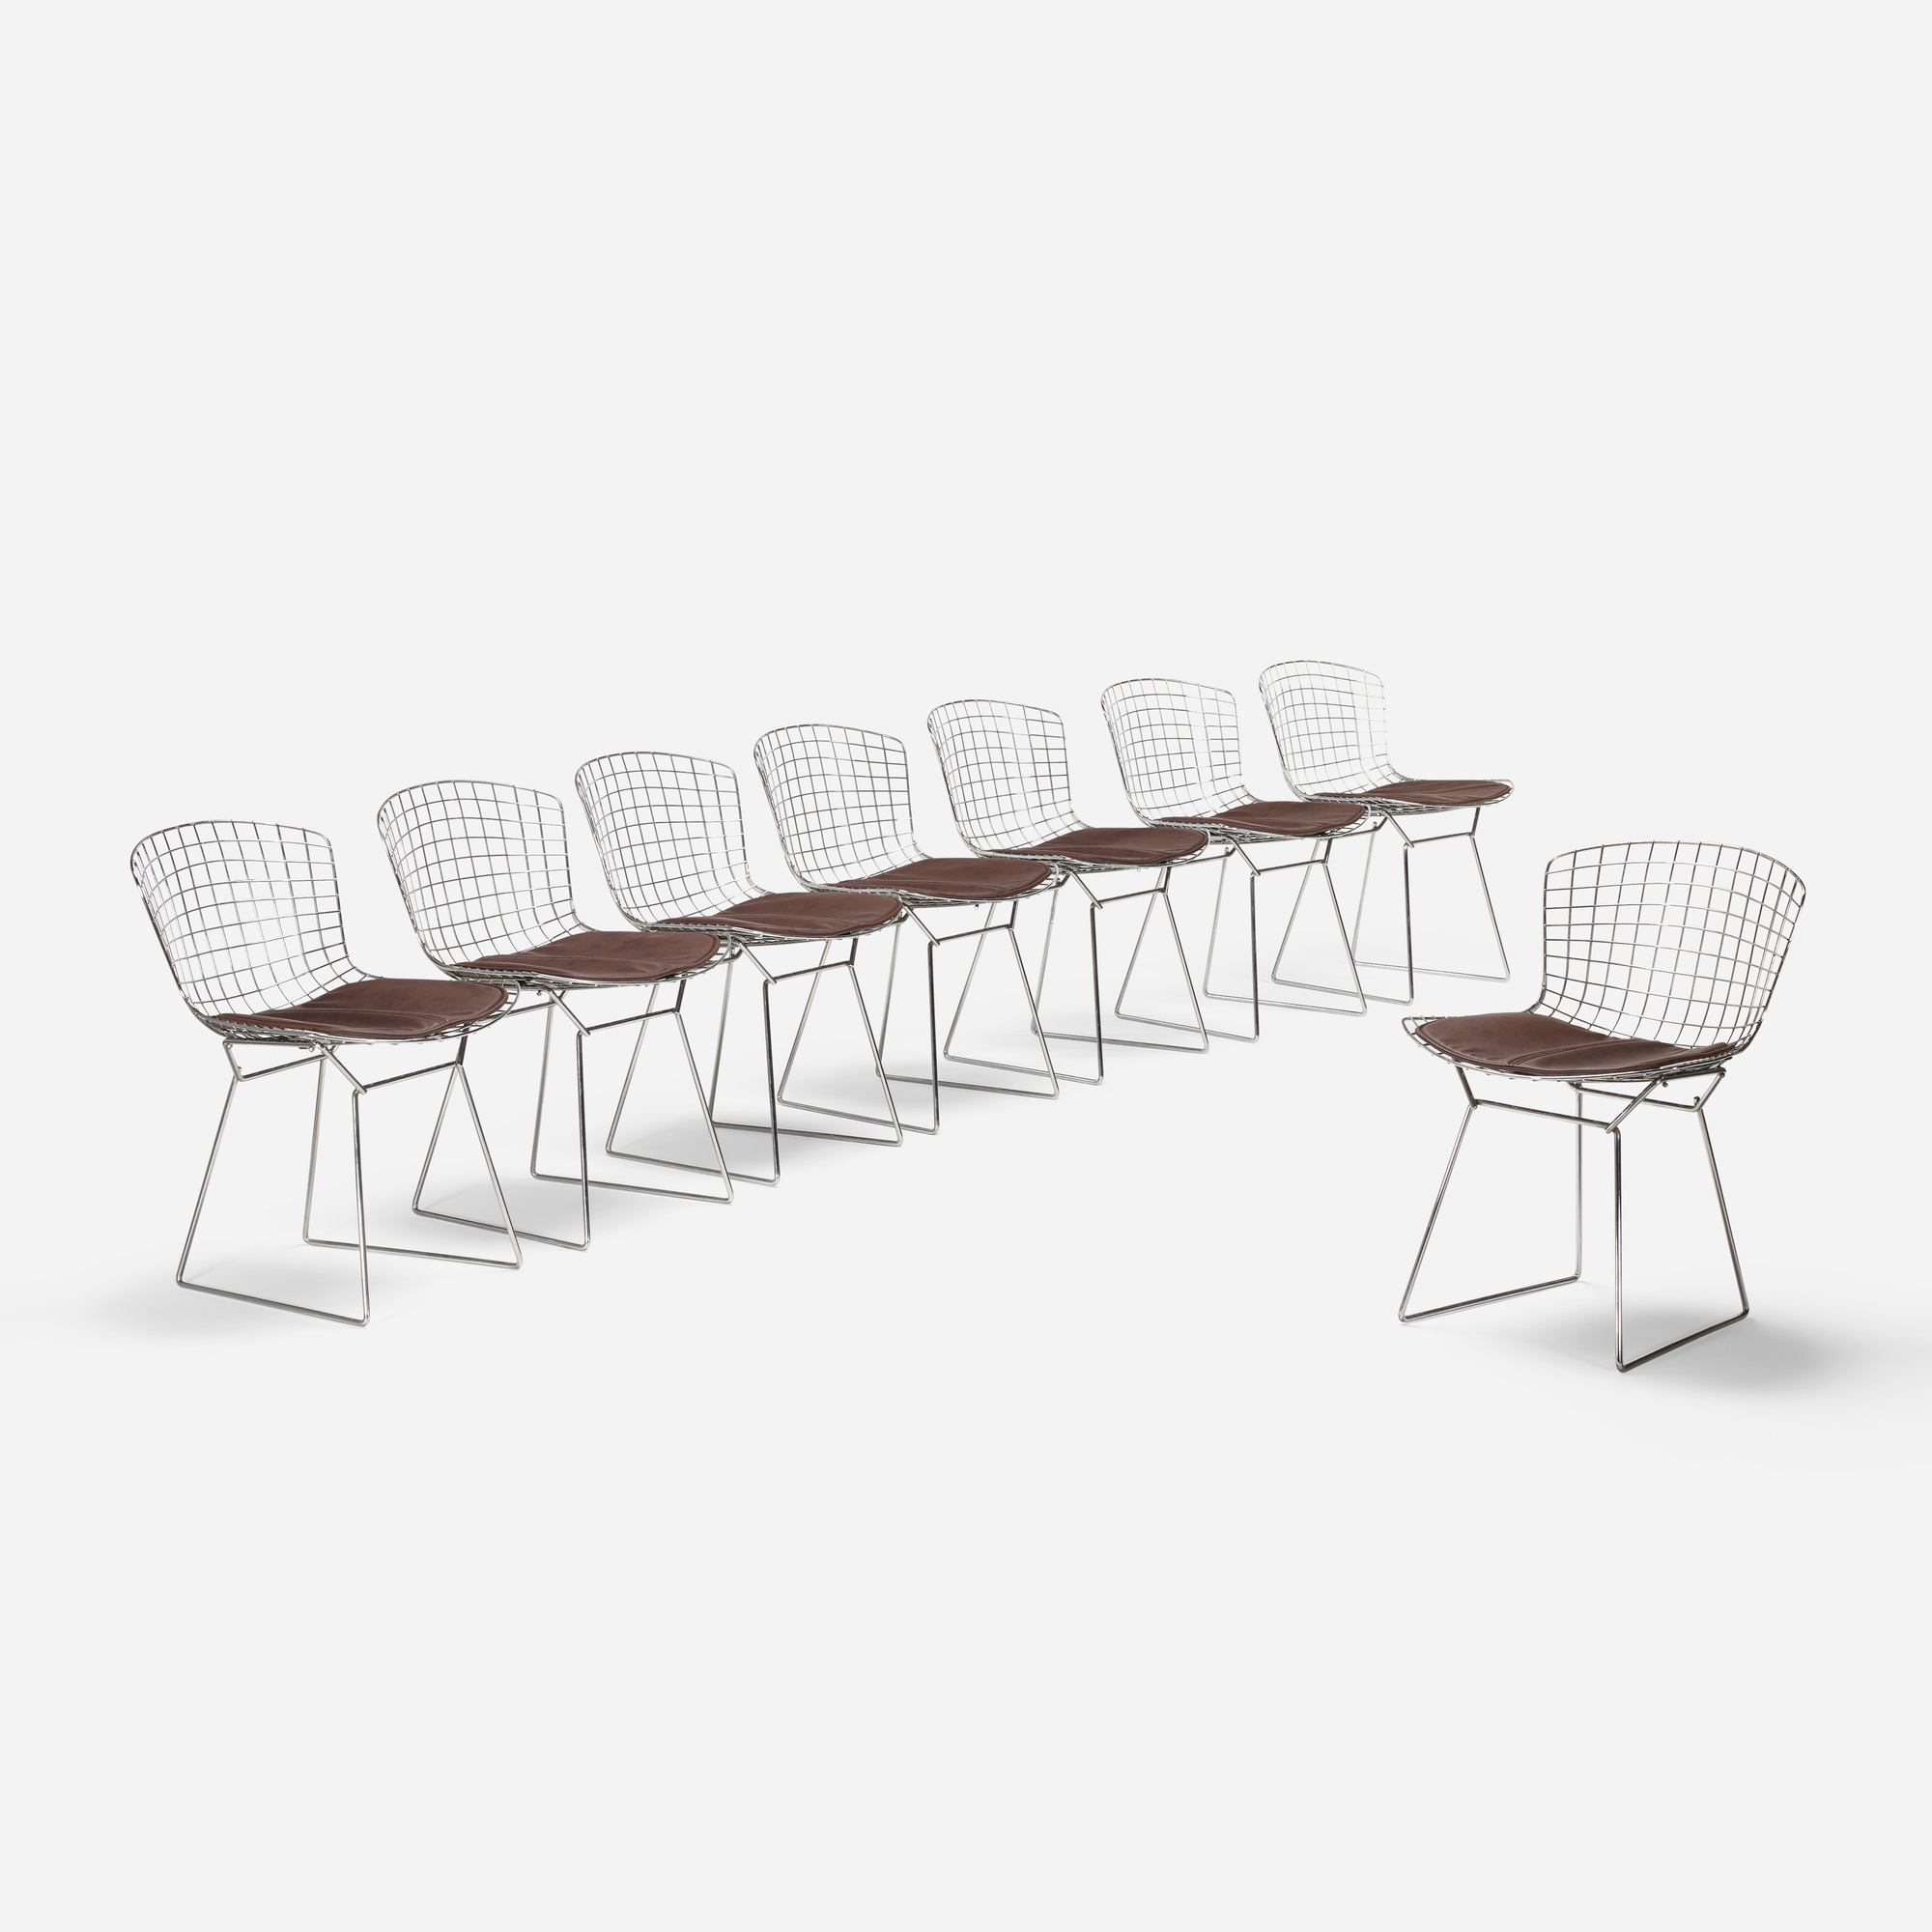 171: Harry Bertoia / dining chairs, set of eight (1 of 3)